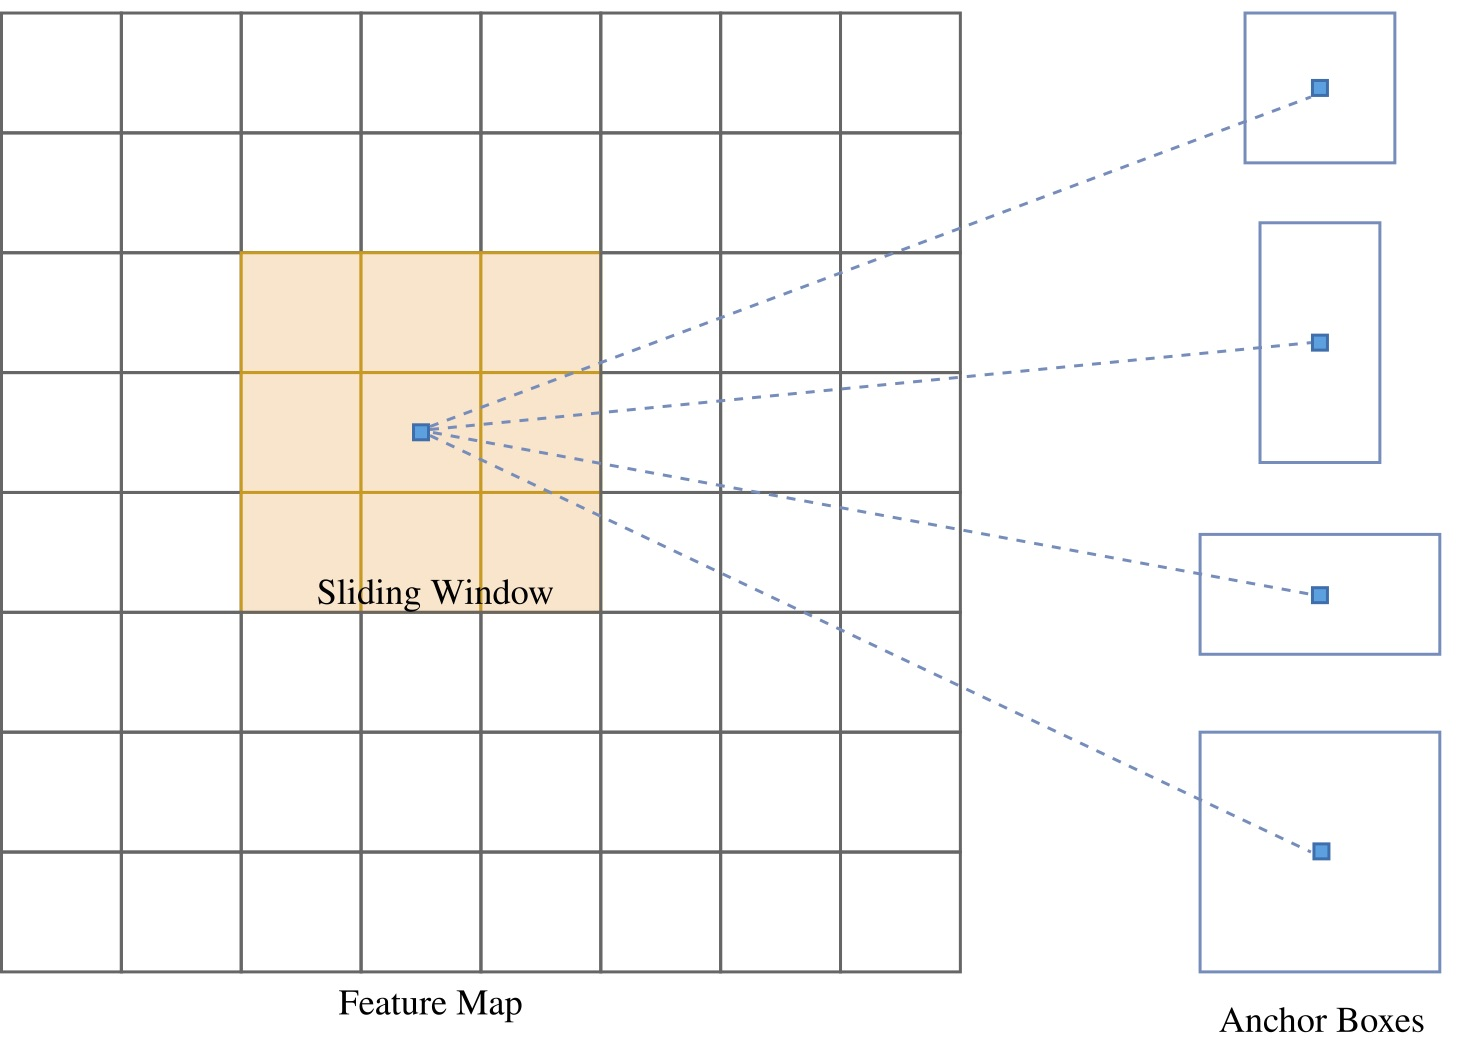 Figure 4: Generation of k anchors per position by sliding a 3x3 window over the feature map.